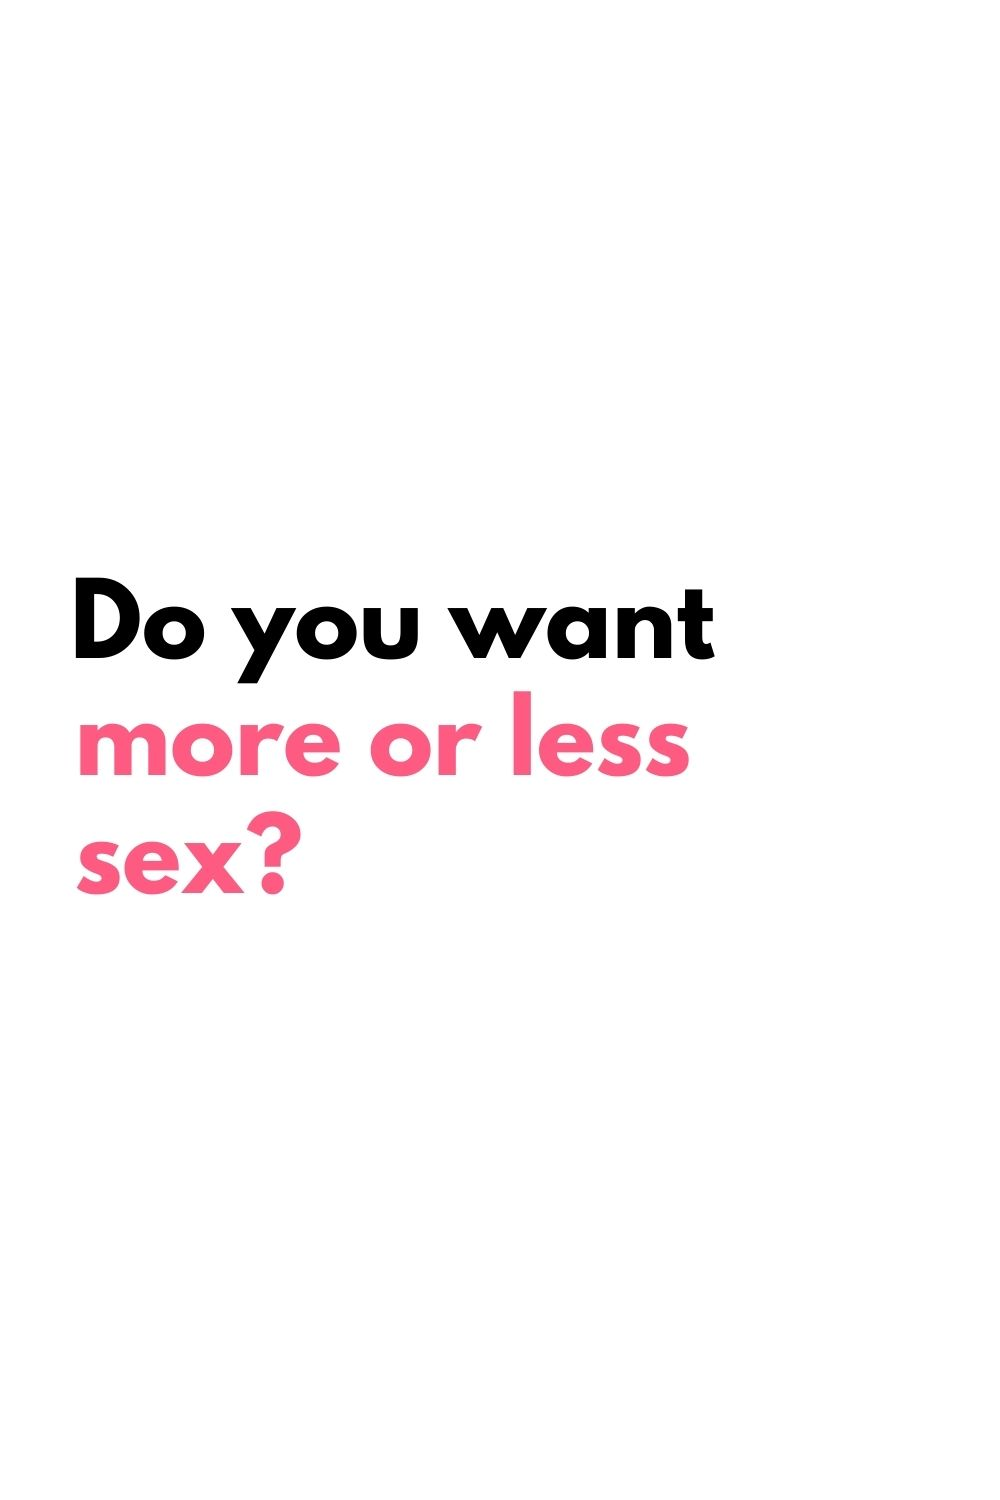 do you want more or less sex